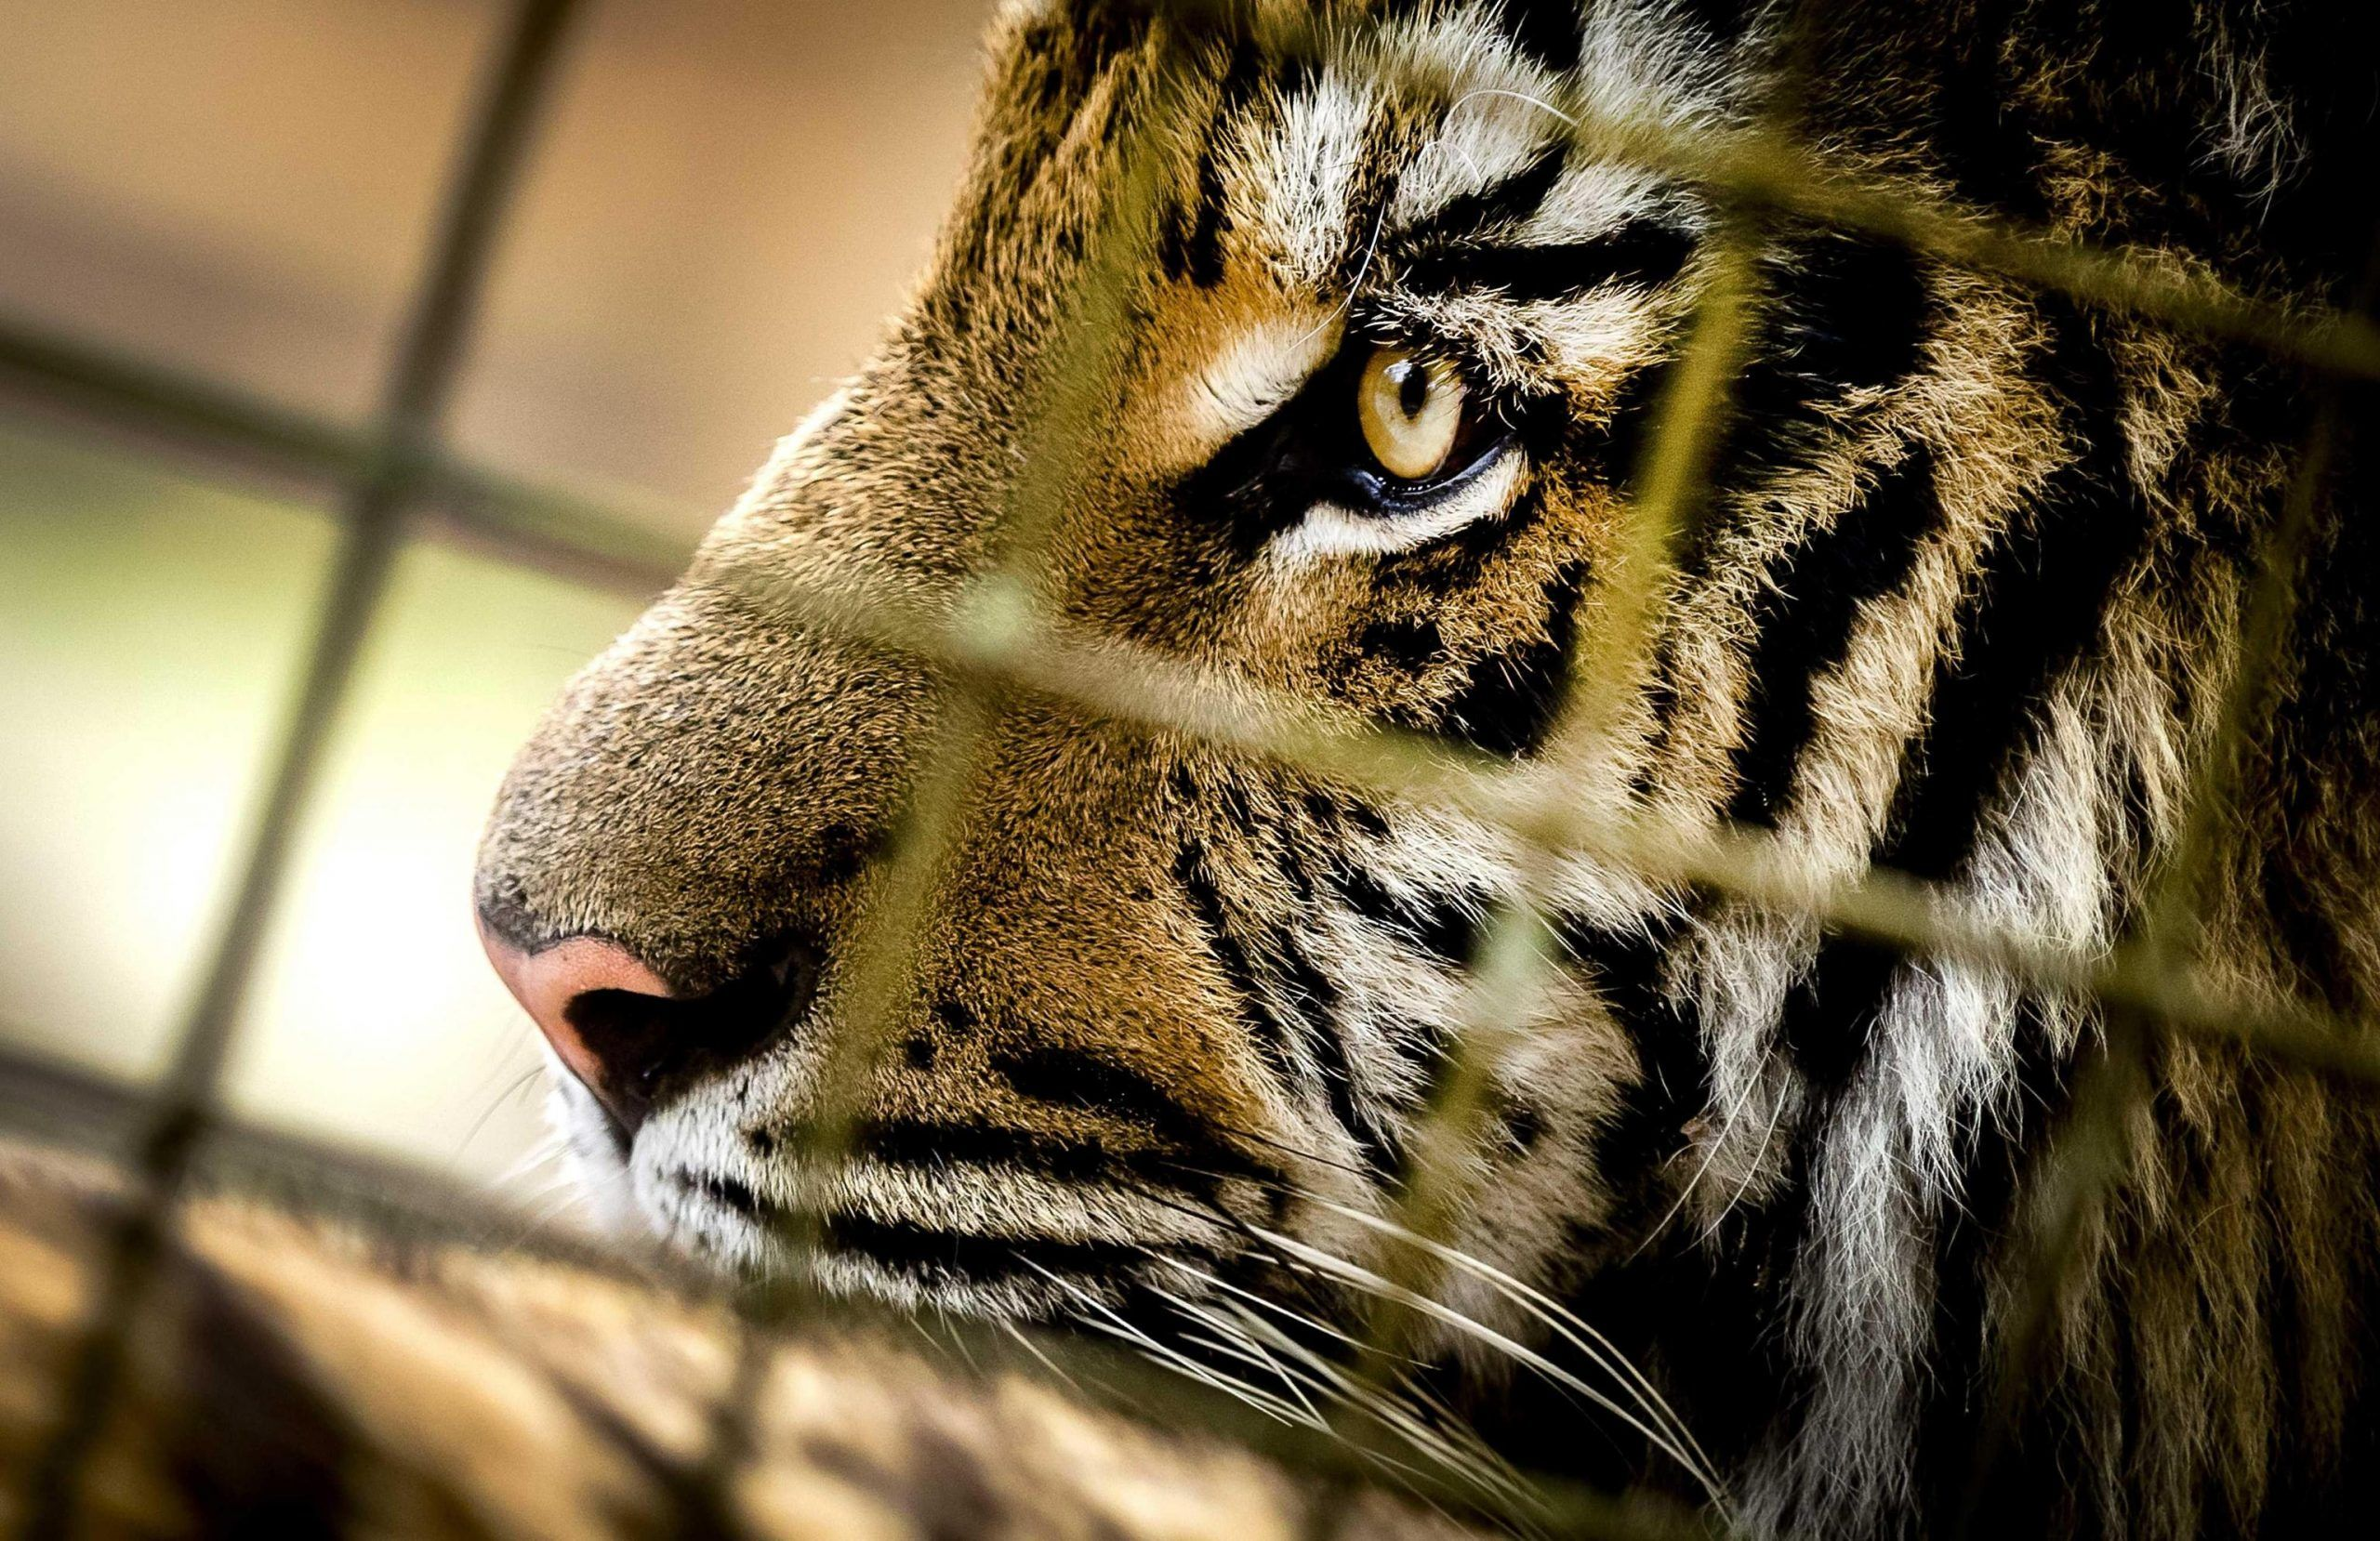 Rescued tigers from the war damaged zoo Magic World near Aleppo